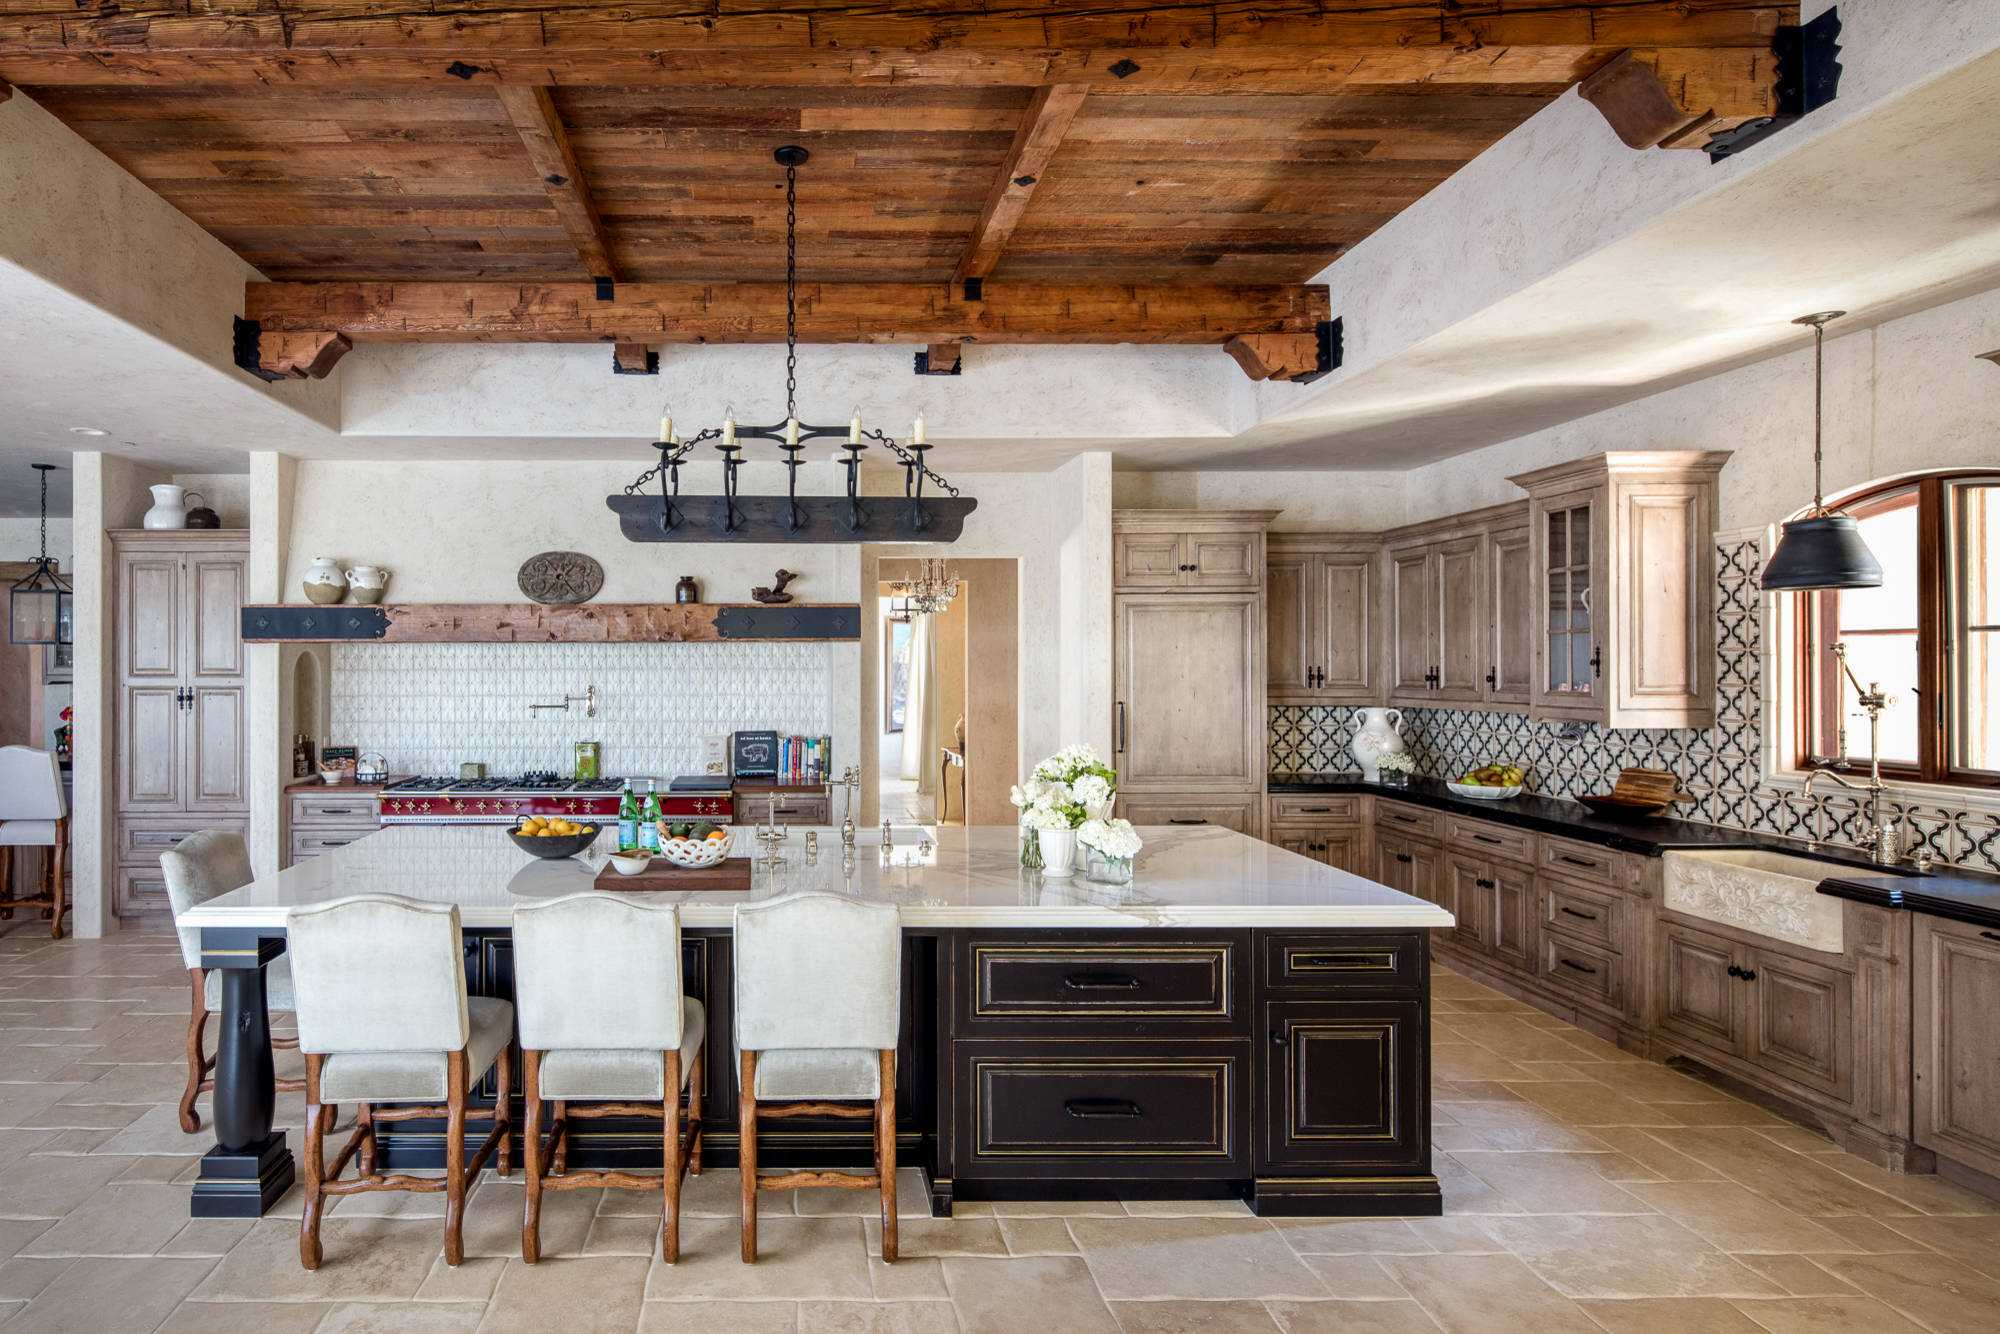 16 Charming Mediterranean Kitchen Designs That Will ... on Rustic:fkvt0Ptafus= Farmhouse Kitchen Ideas  id=44130